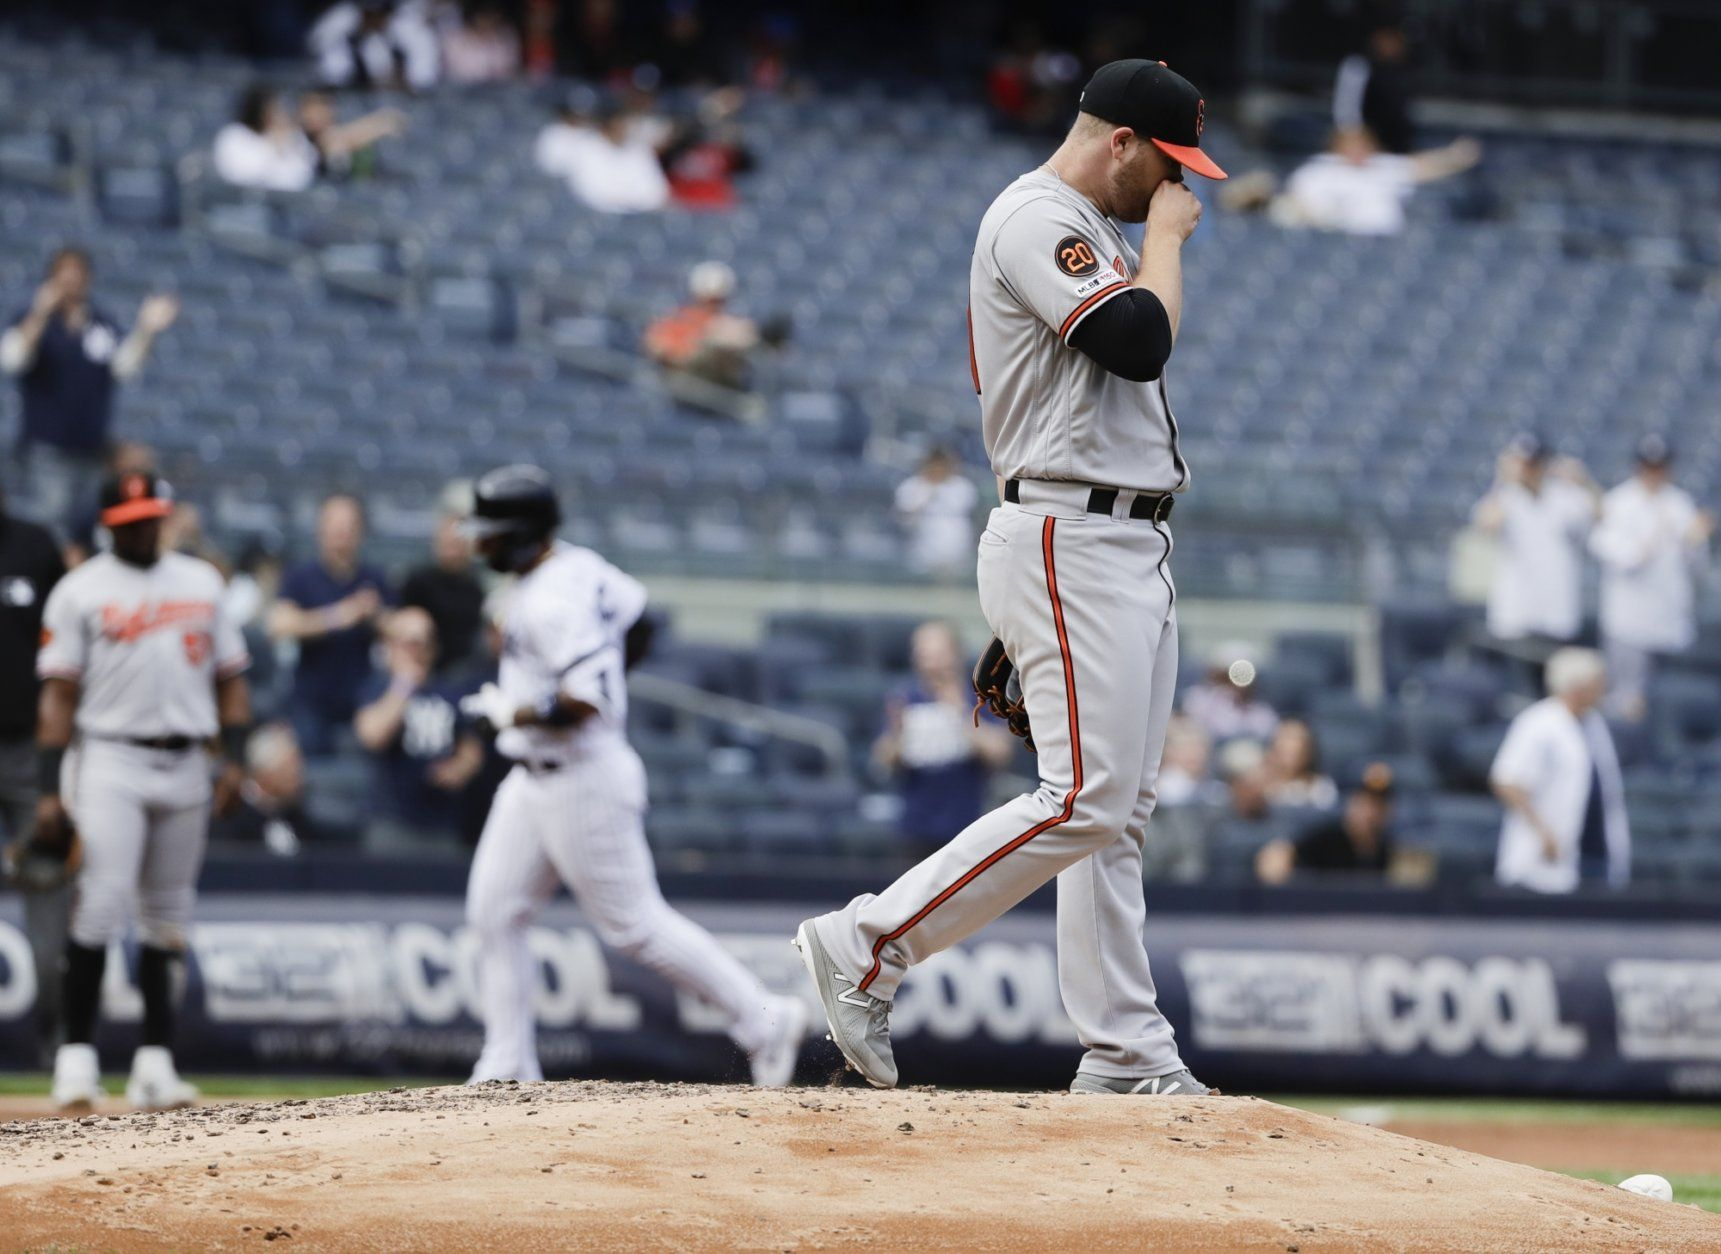 Baltimore Orioles' David Hess, right, reacts as New York Yankees' Gleyber Torres, left, runs the bases after hitting a home run during the fourth inning of a baseball game Wednesday, May 15, 2019, in New York. (AP Photo/Frank Franklin II)